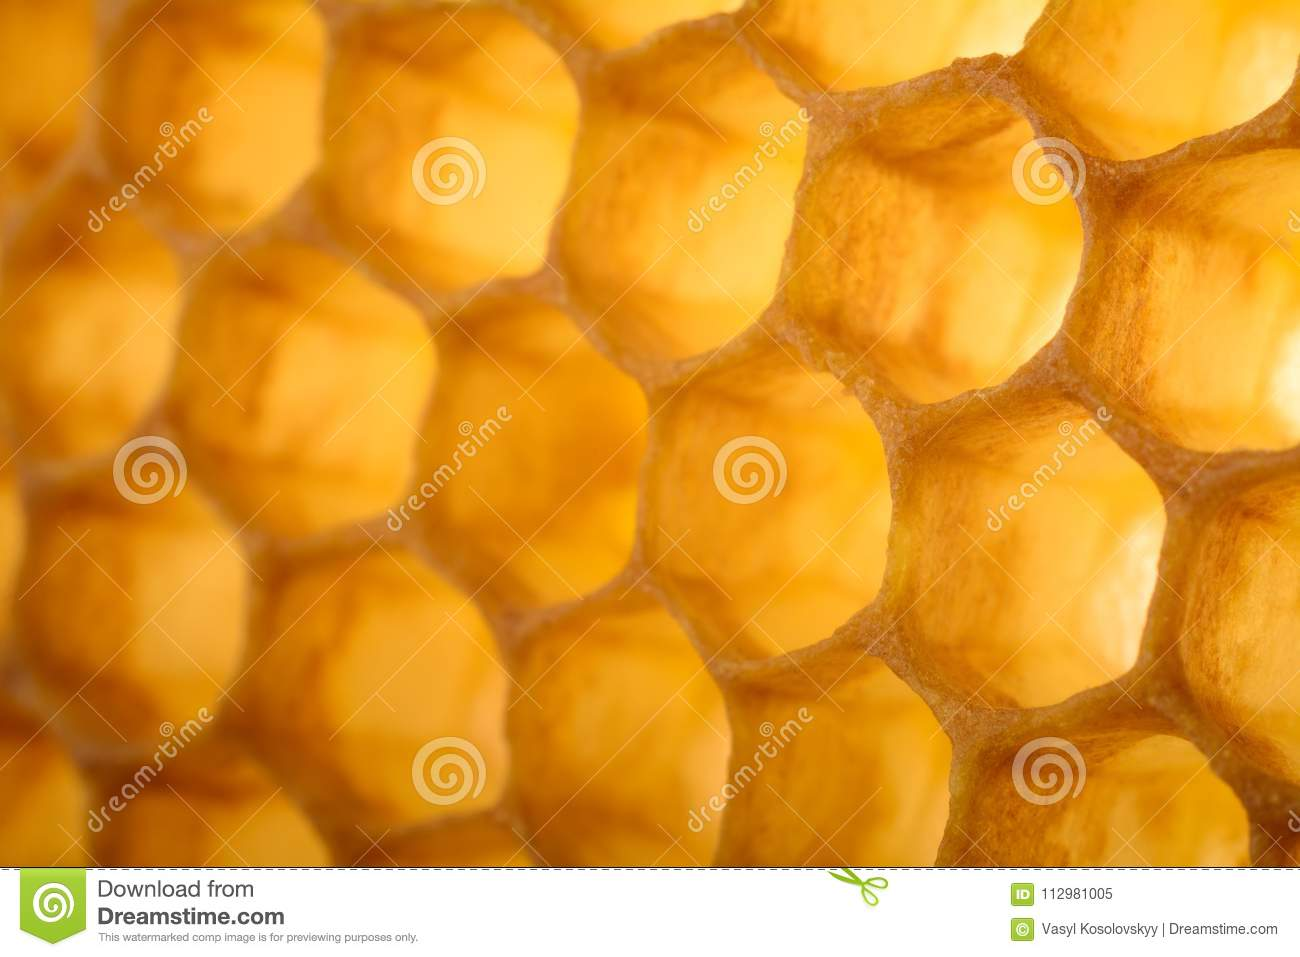 Honeycomb macro as a background. Beekeeping products. Apitherapy.